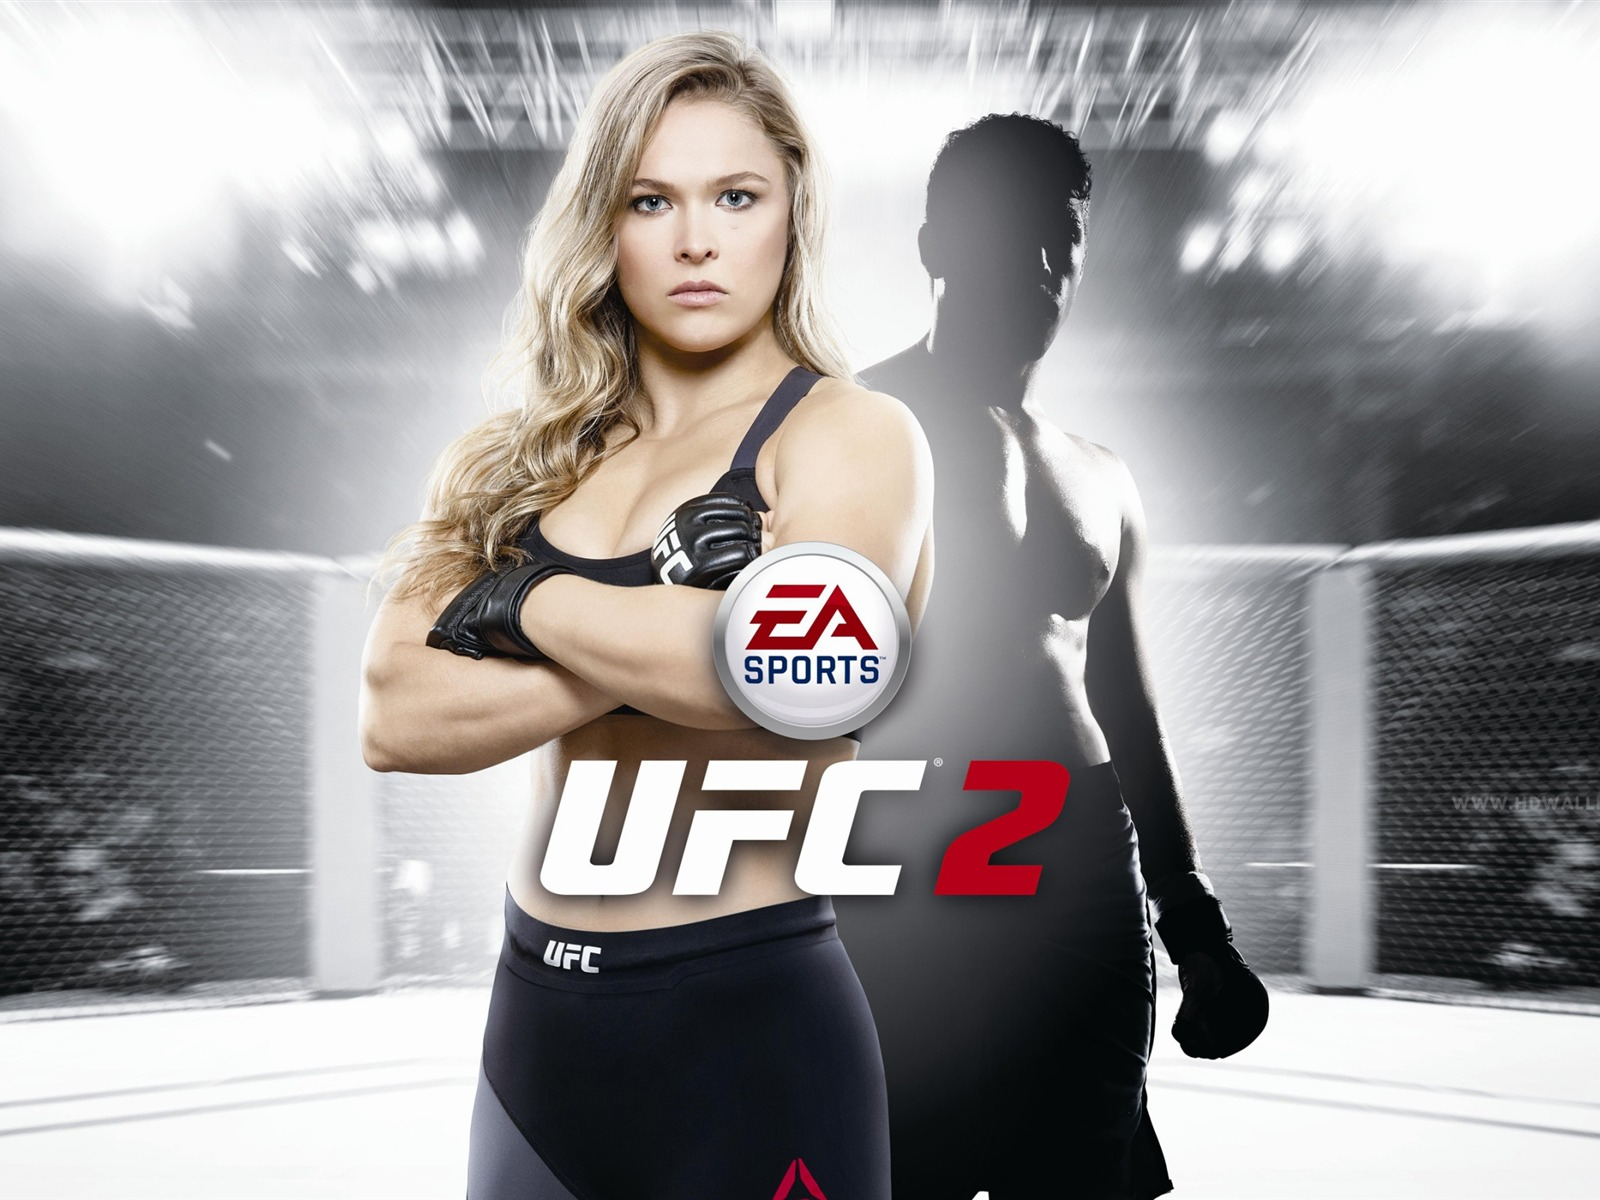 Ea Sports Ufc Pc Game Hd Wallpaper Avance 10wallpapercom